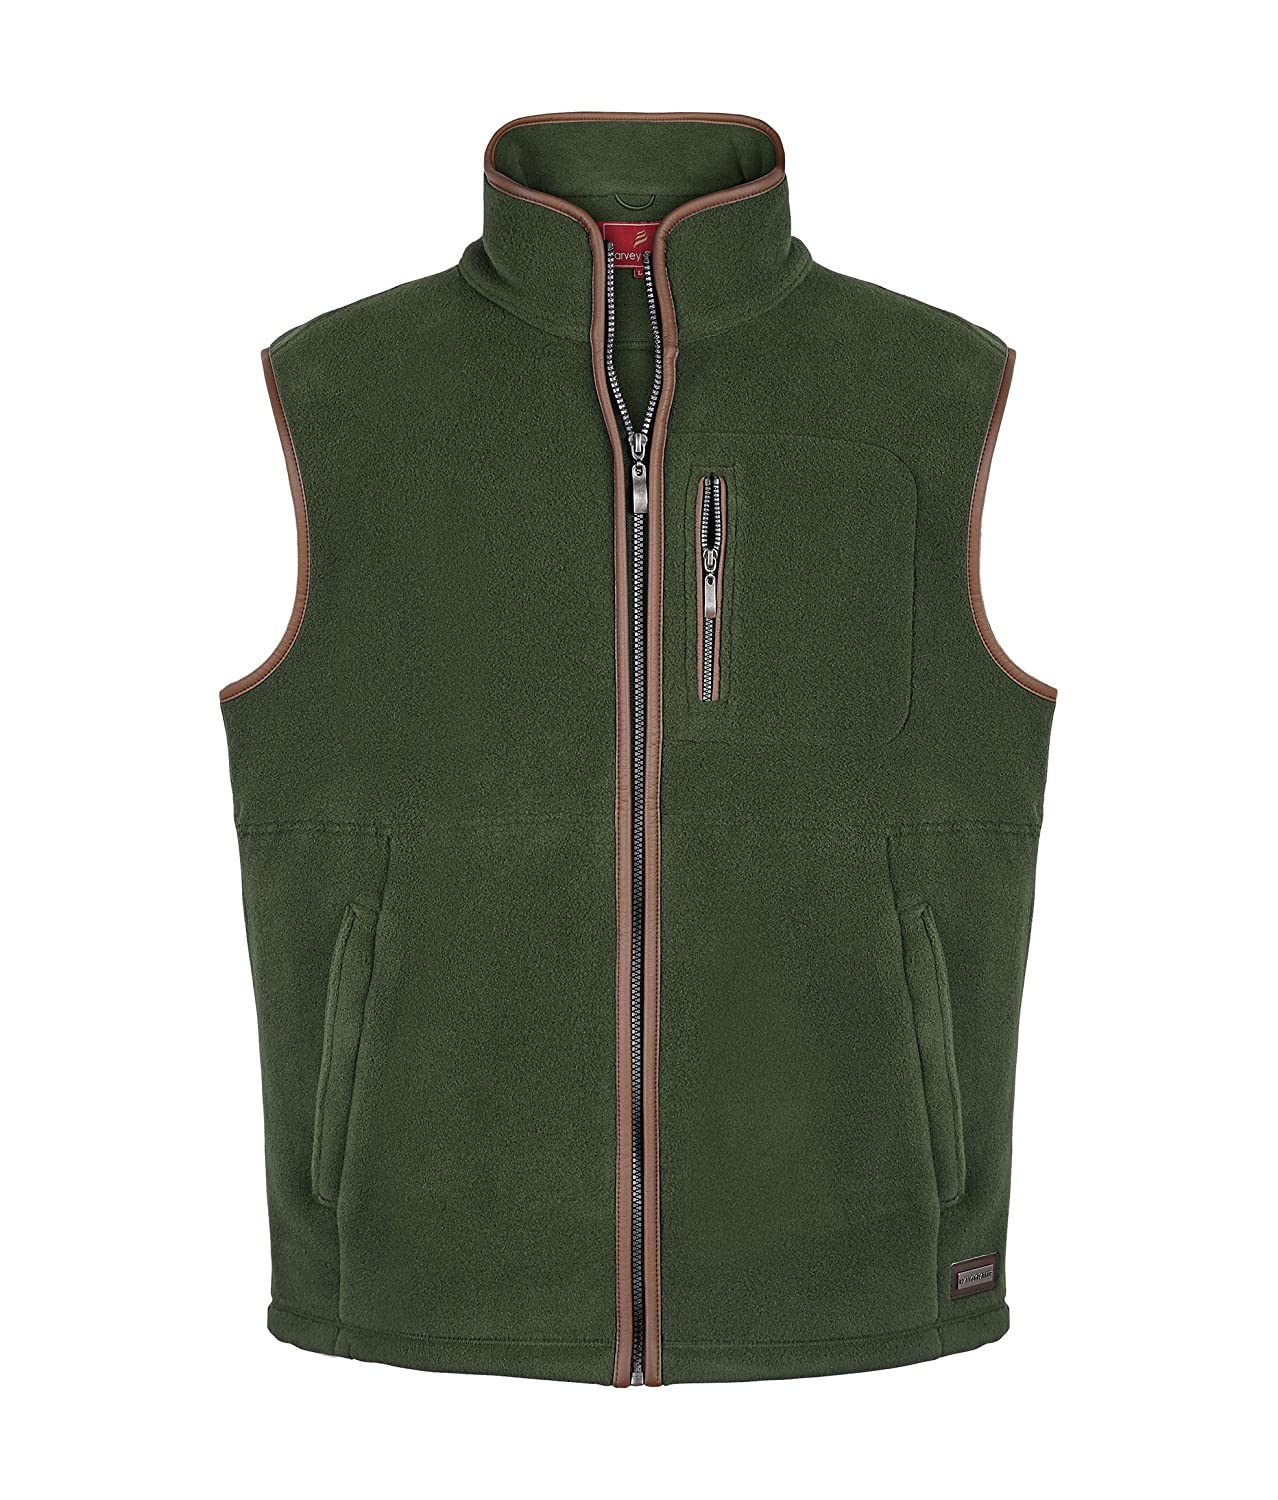 Harvey Parker Corby - Mens Luxury Country Lightweight Sleeveless Fleece Gilet Vest Bodywarmer